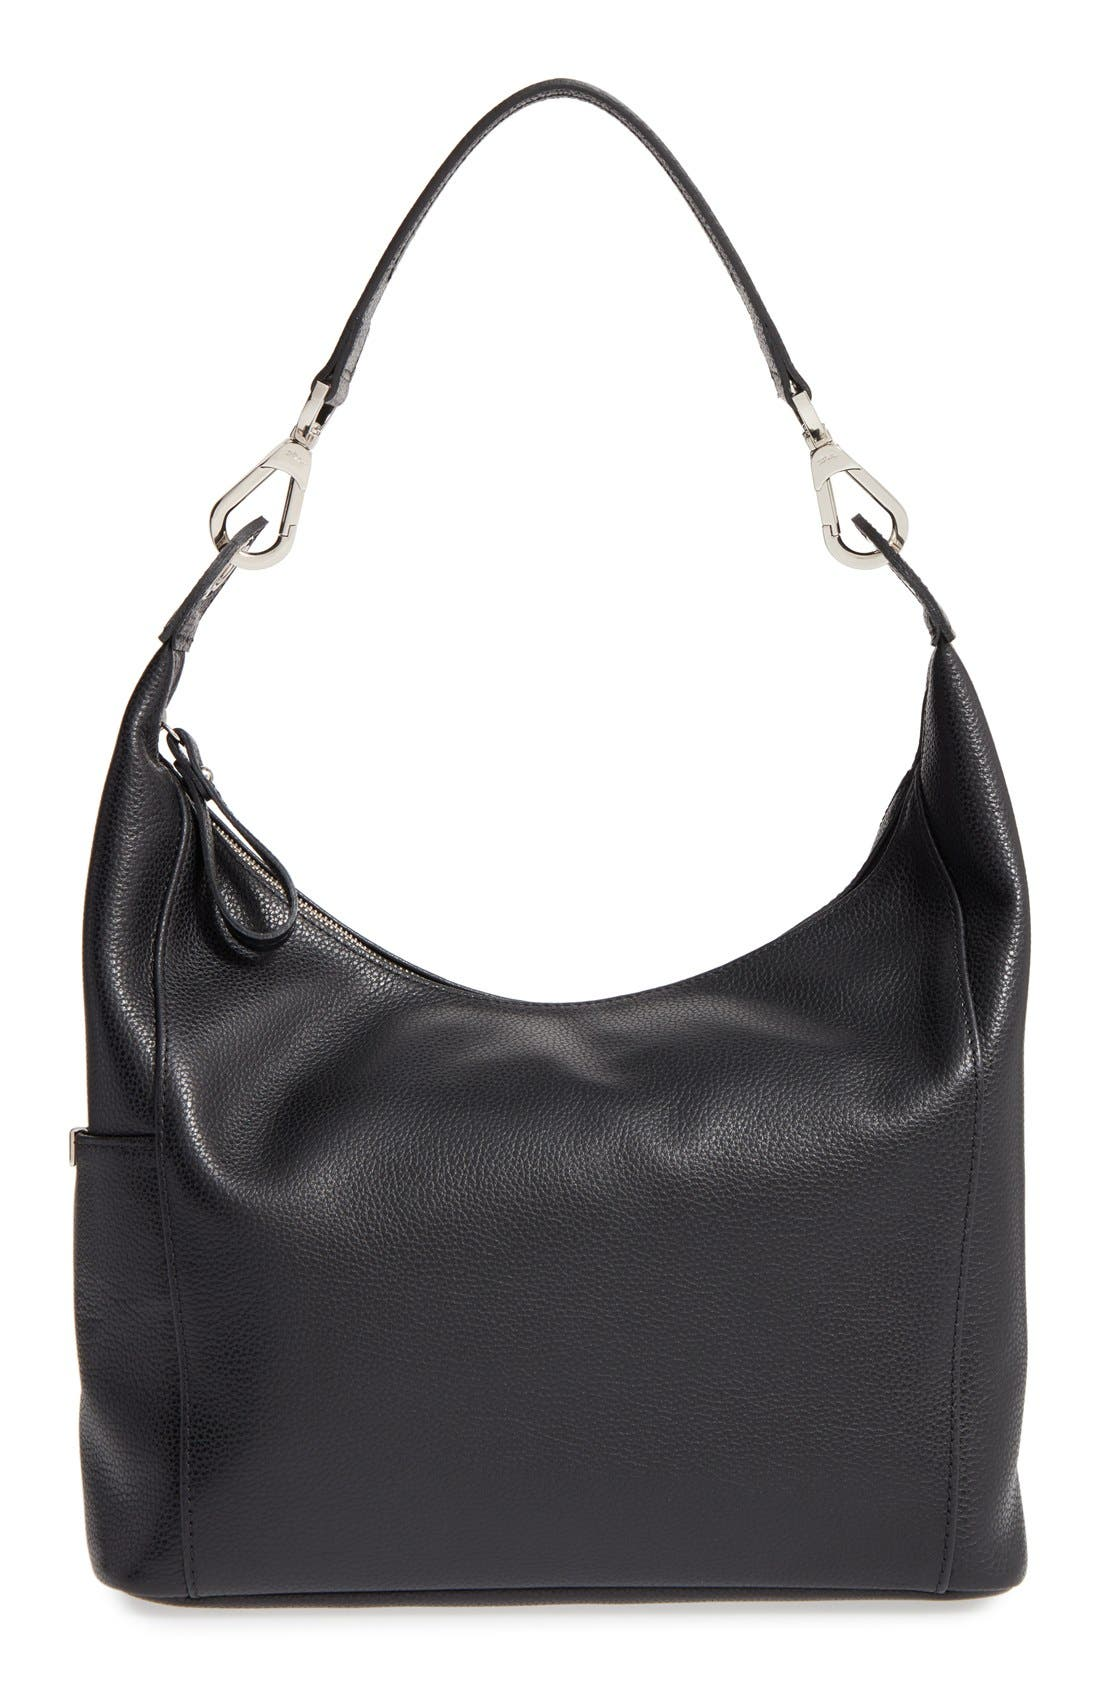 'Le Foulonne' Leather Hobo Bag,                         Main,                         color, Black